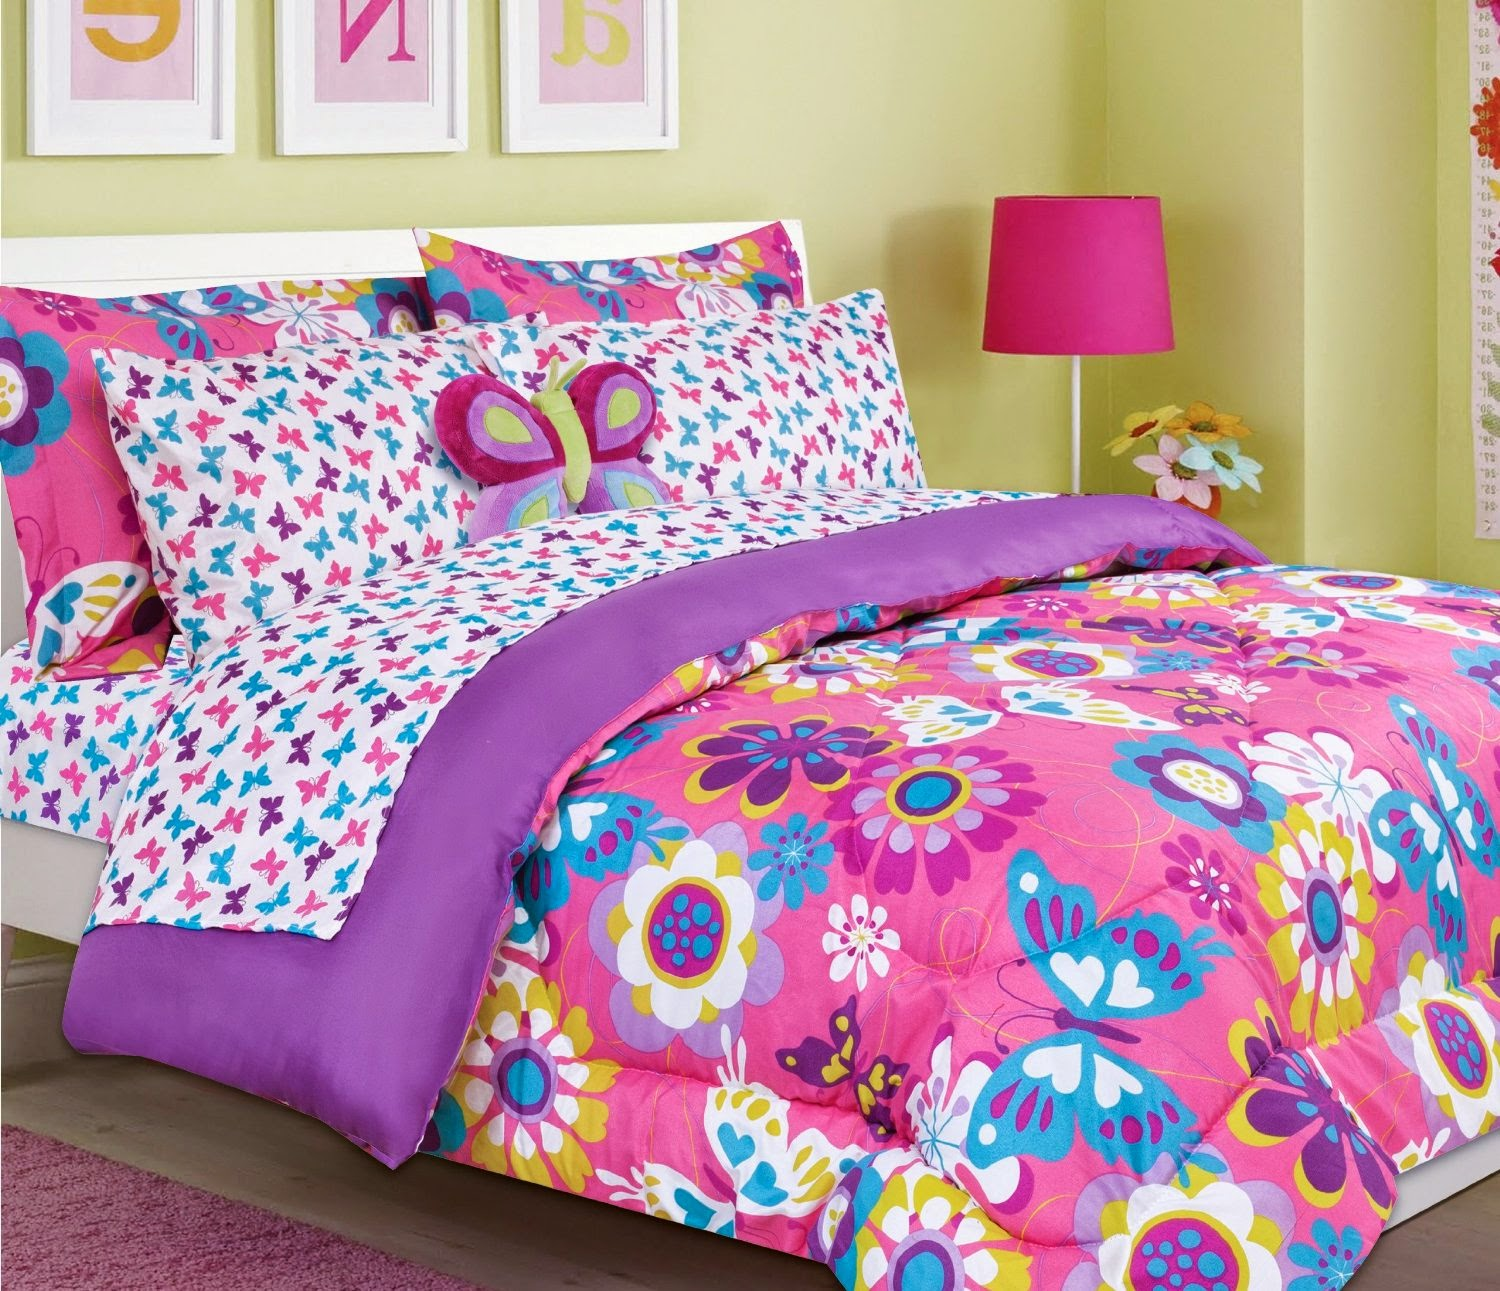 Bedroom Decor Ideas And Designs Top Butterfly Themed Bedding Ideas For Girls